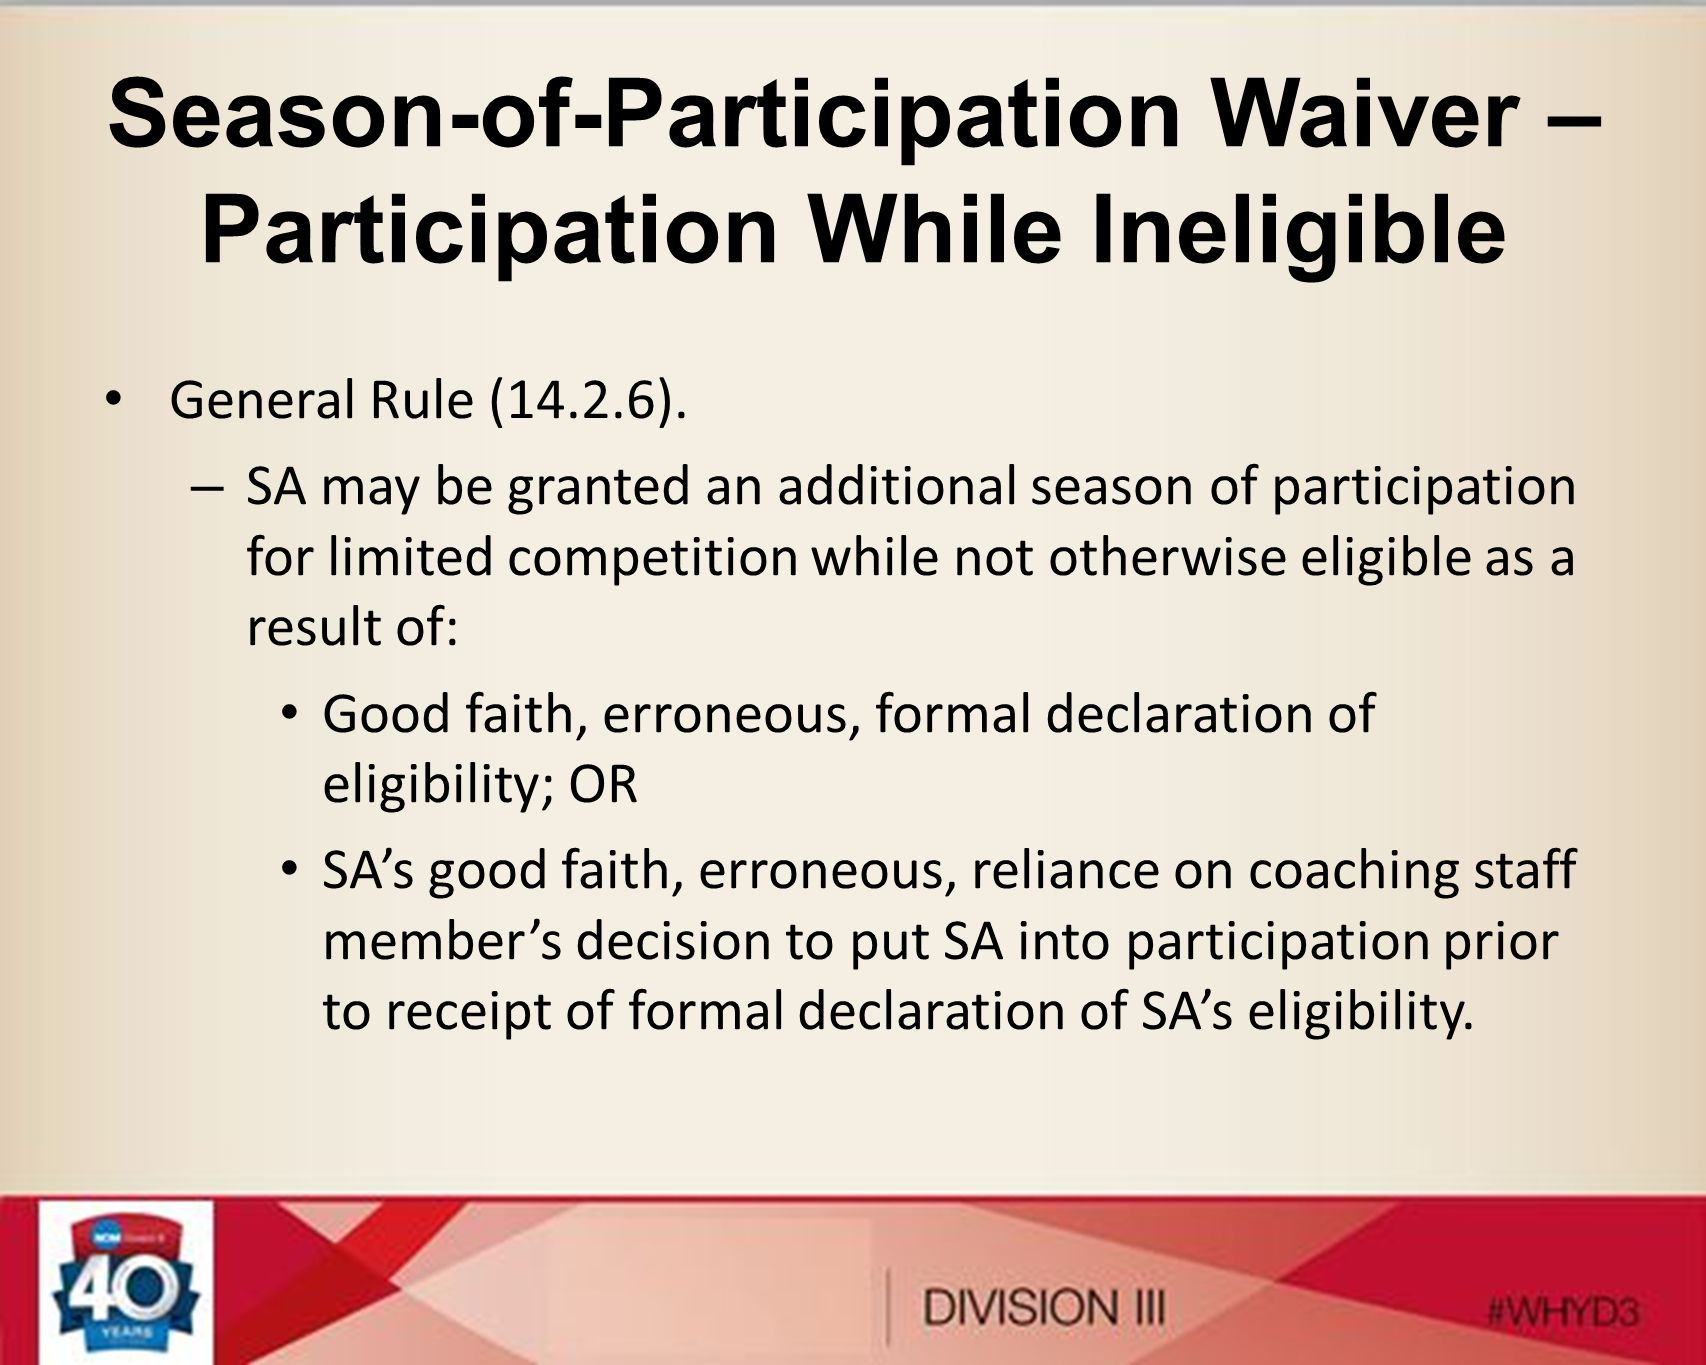 Season-of-Participation Waiver – Participation While Ineligible